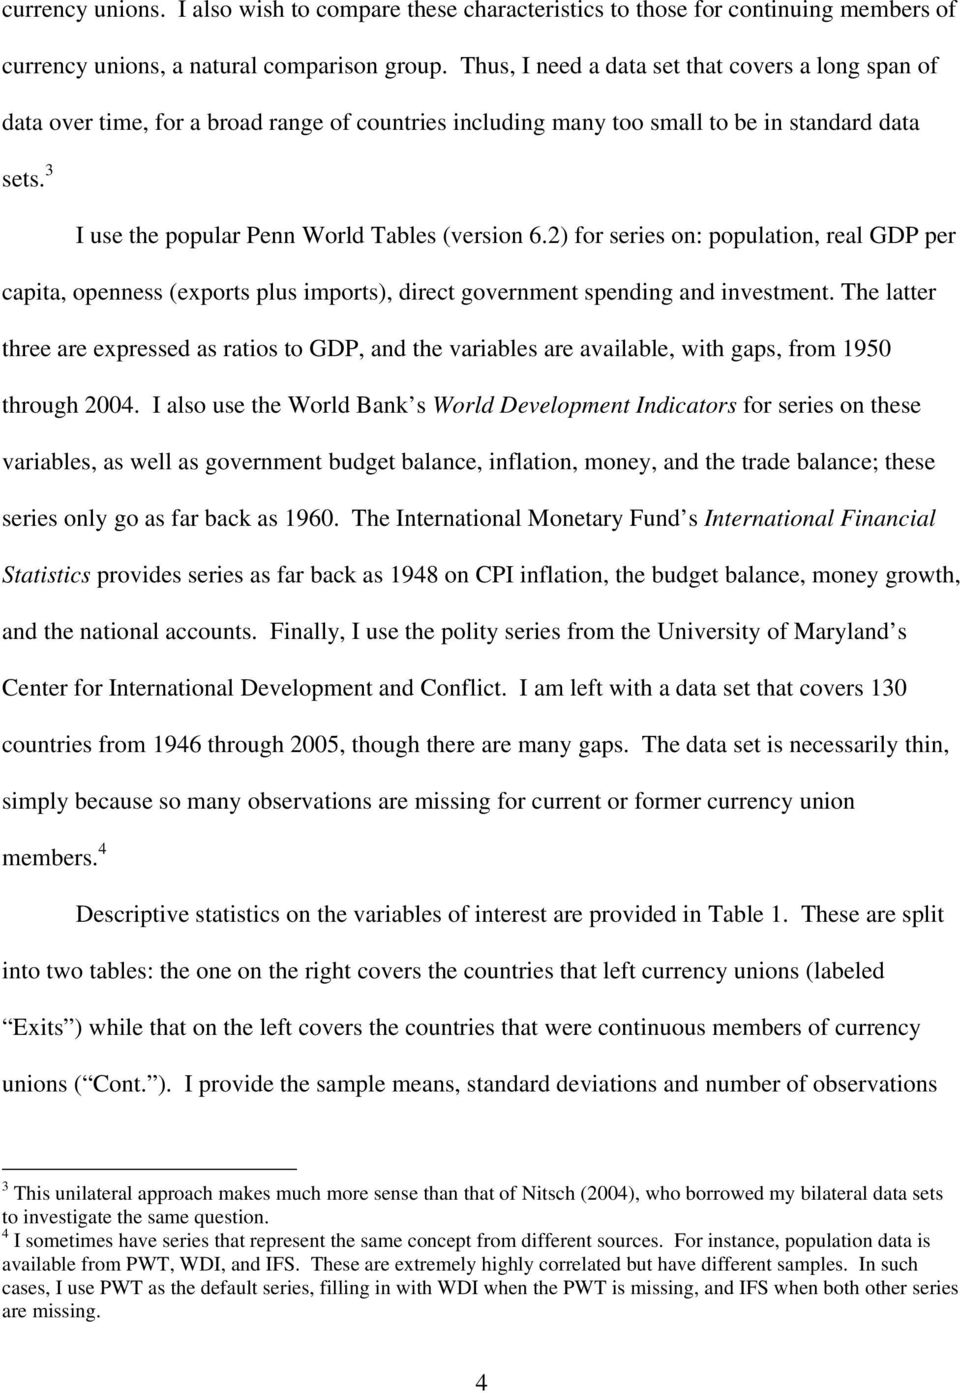 3 I use the popular Penn World Tables (version 6.2) for series on: population, real GDP per capita, openness (exports plus imports), direct government spending and investment.